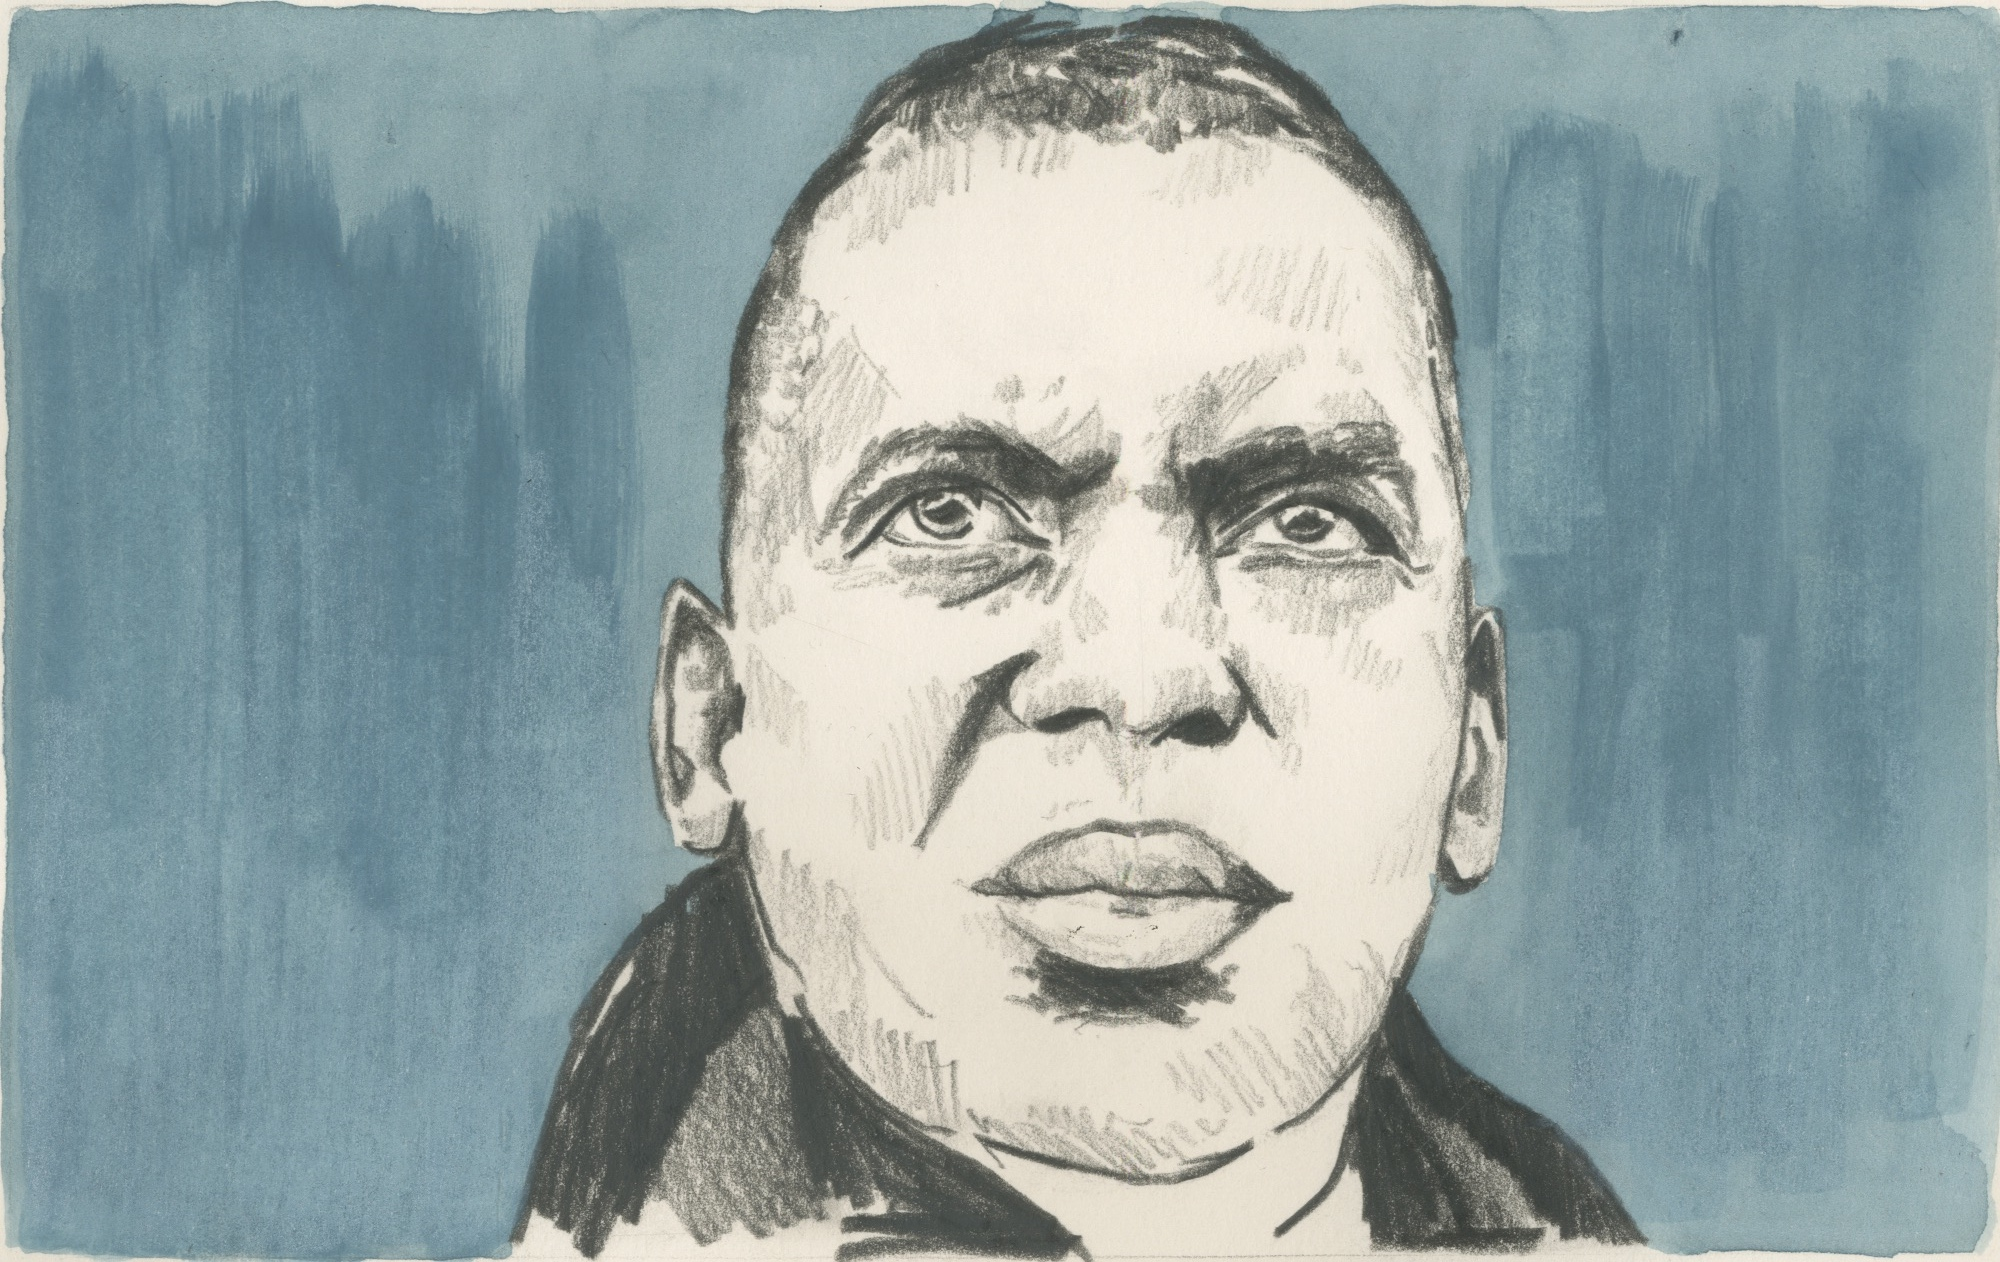 17/01/15 Biram Ould Abeid, the head of an anti-slavery group, who came second in presidential polls in Mauritania last year, was handed a two-year jail sentence amid a resurgent anti-slavery movement in the nation with the world's highest rate of the practice. It is estimated there are over 115,000 slaves in the country.